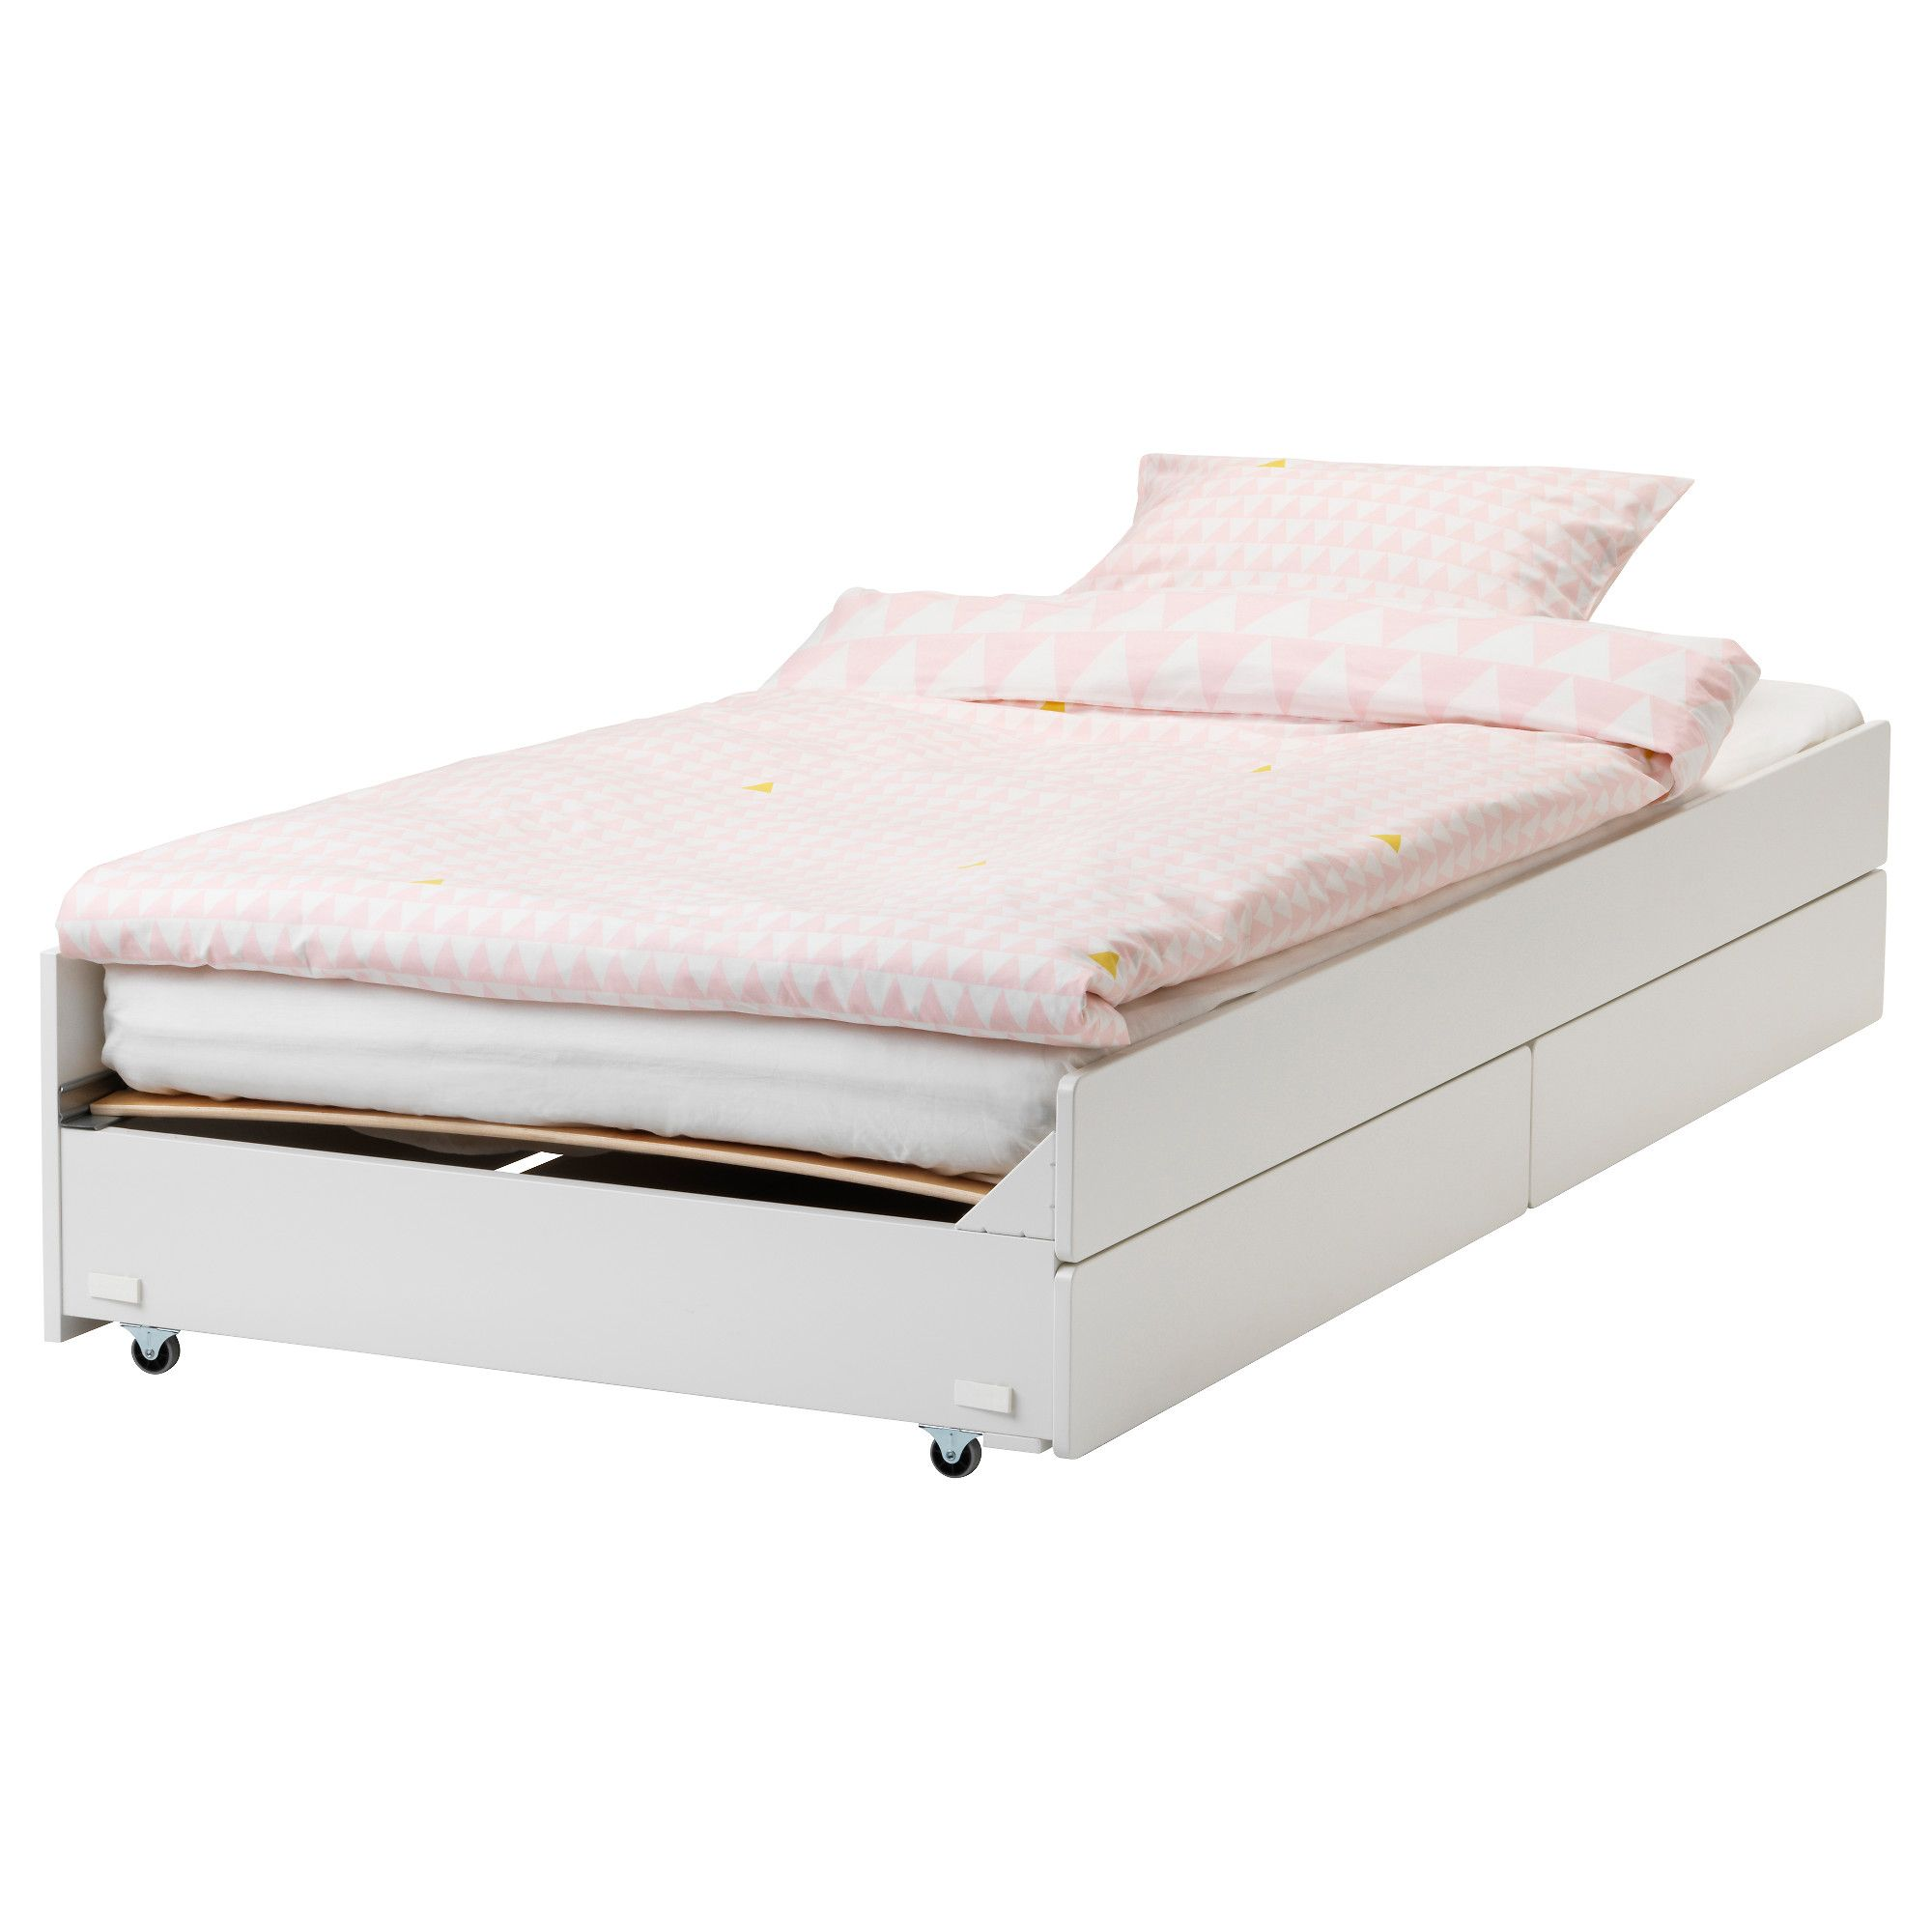 Ikea Slakt Pull Out Bed With Storage White Bed Storage Pull